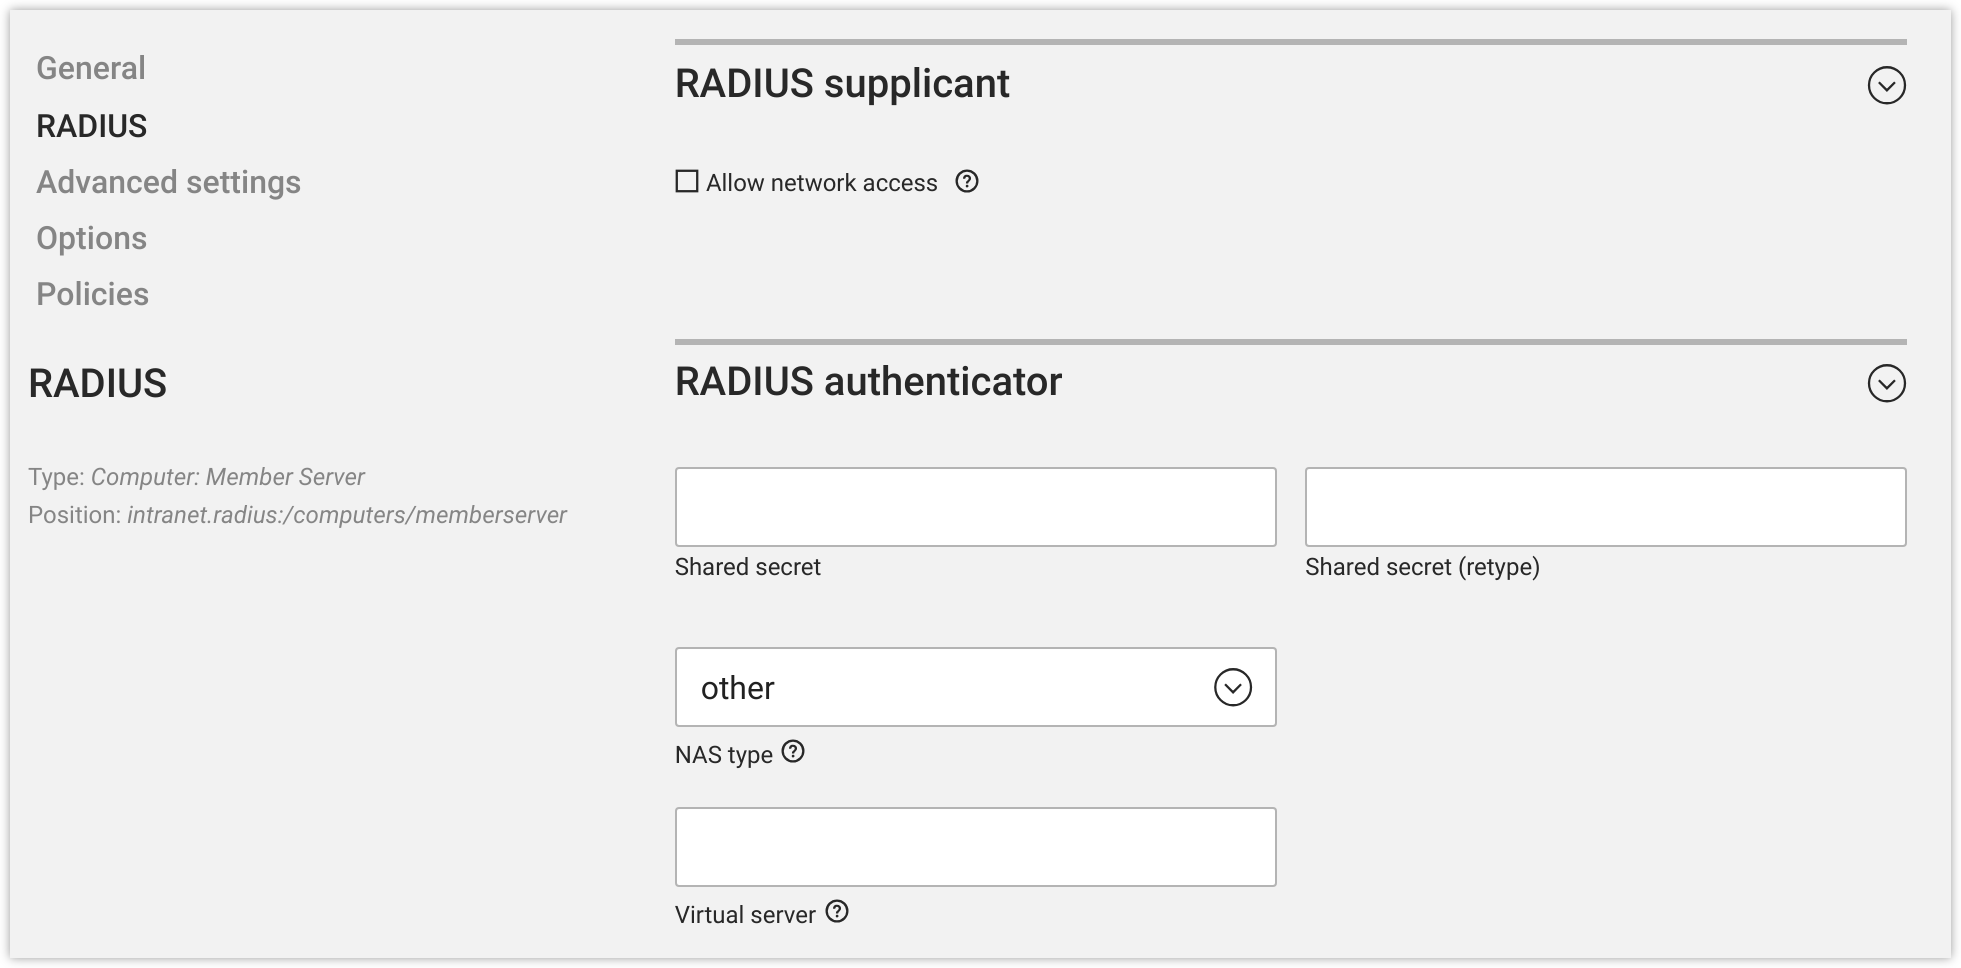 RADIUS authenticator options